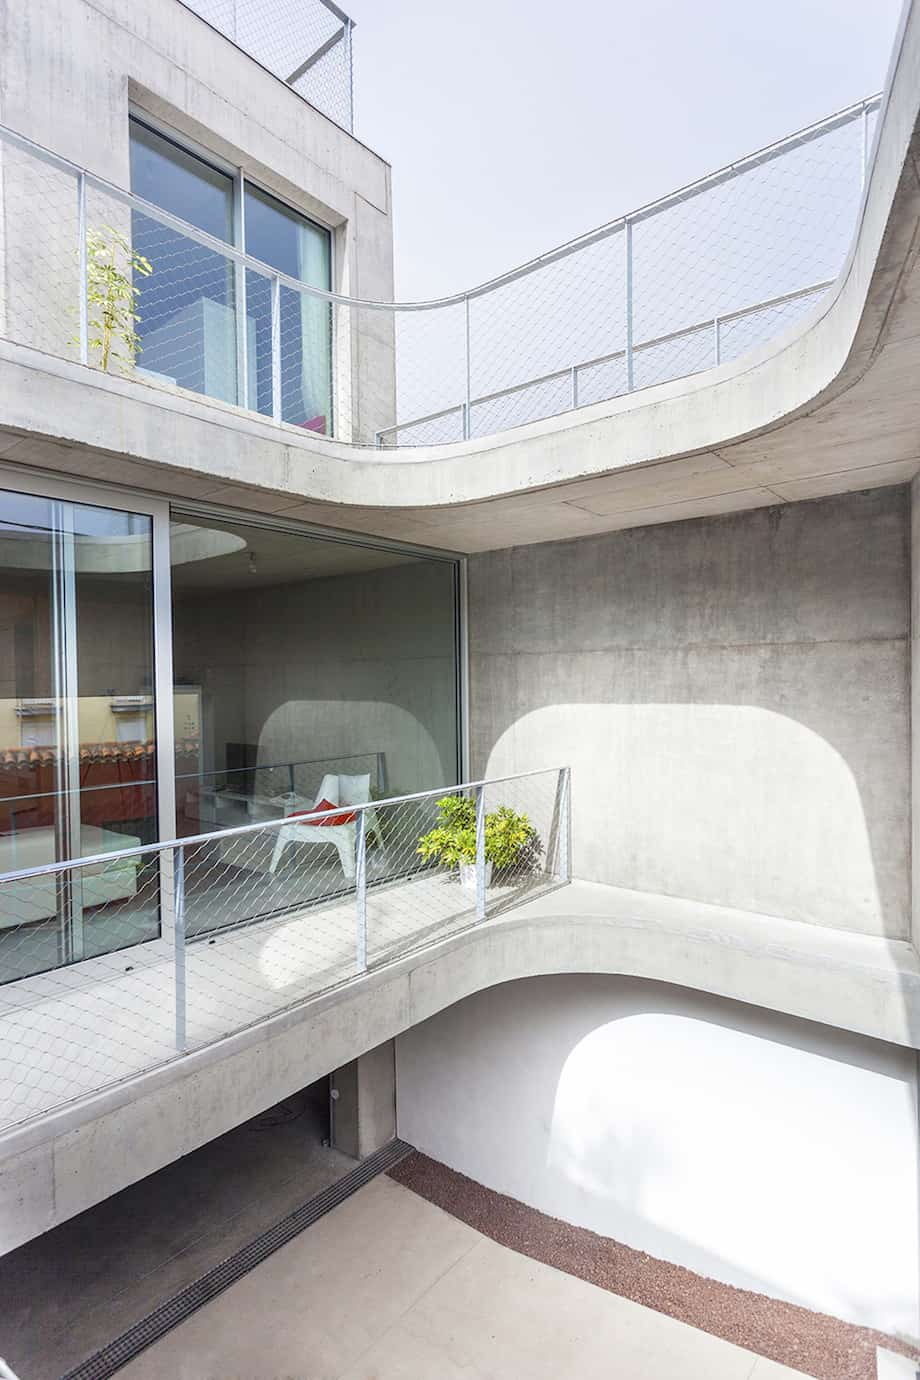 Concrete Home With Interior Courtyard - G House by Esaú Acosta homesthetics (3)